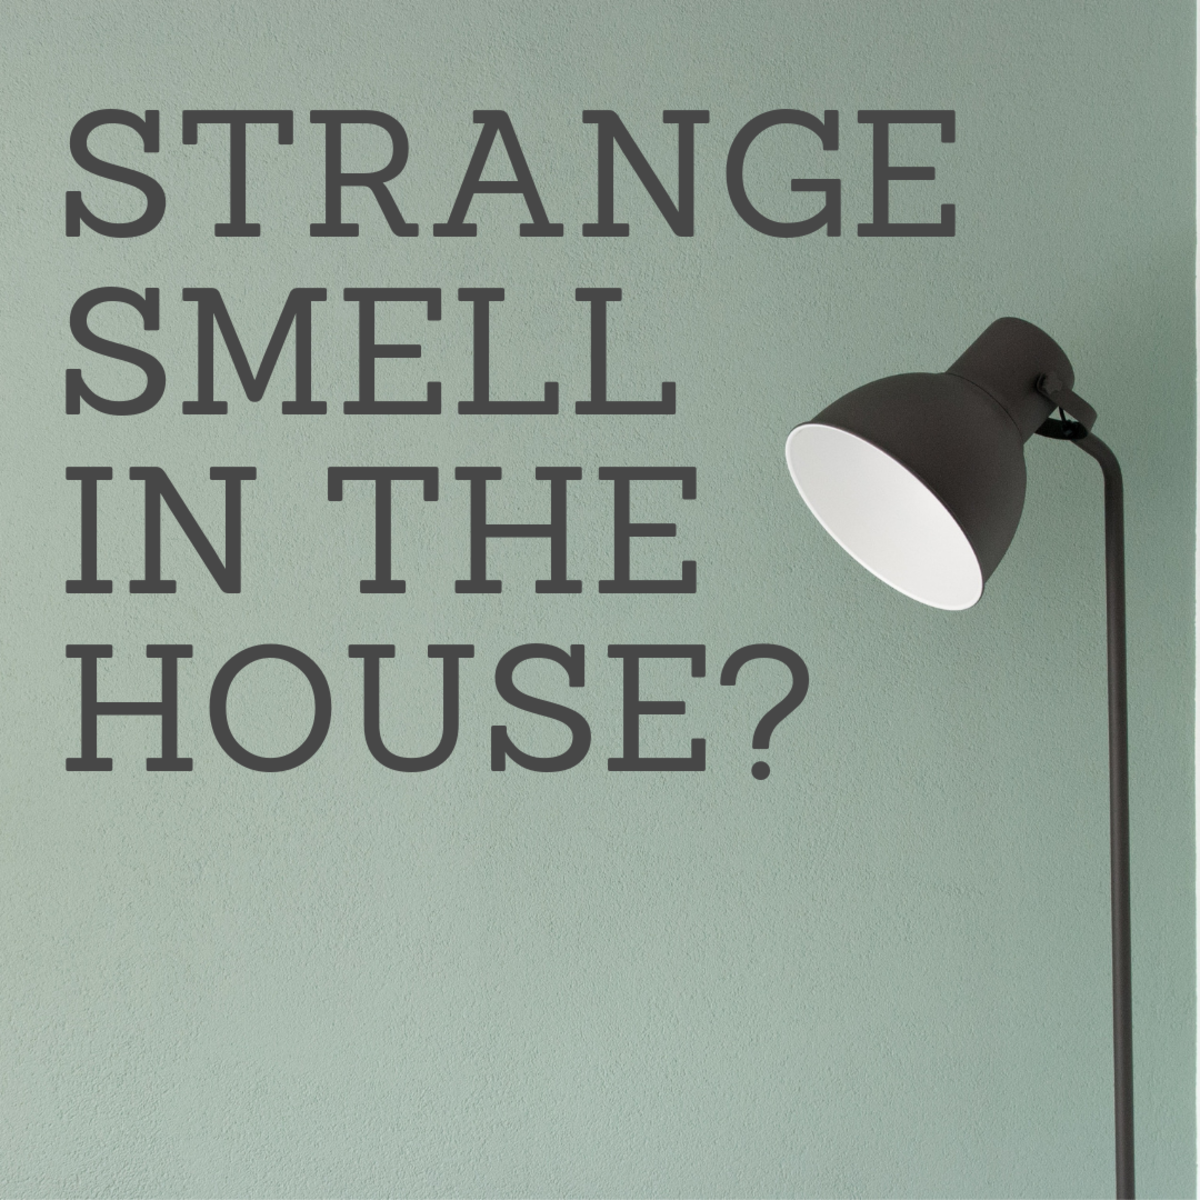 What Is That Strange Smell in the House?